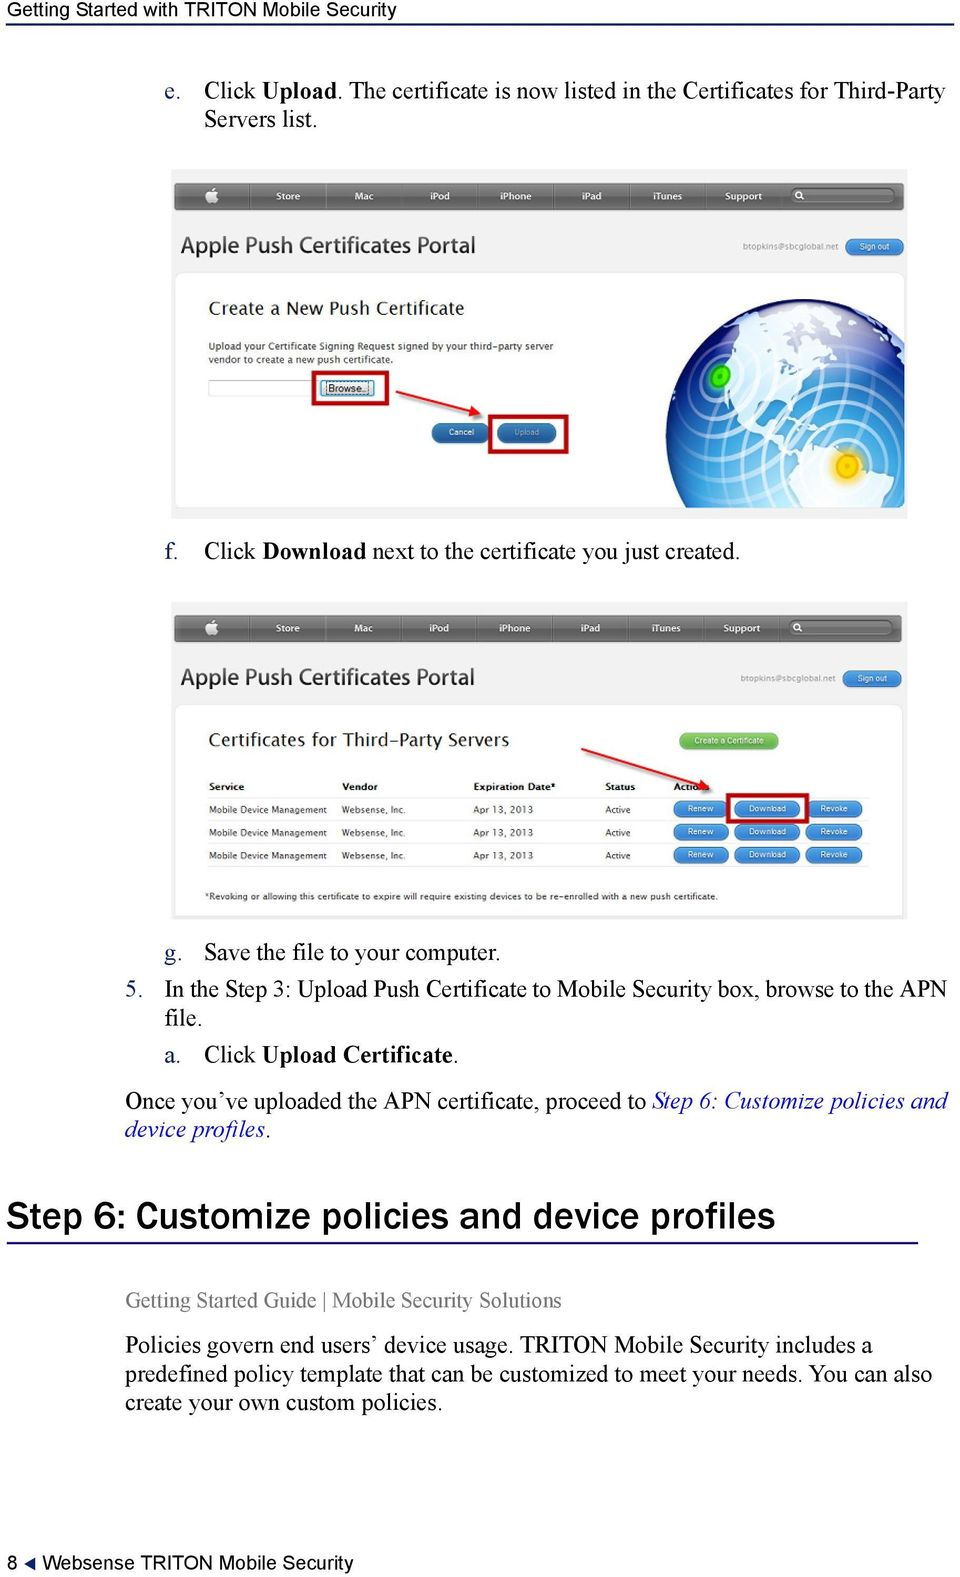 Once you ve uploaded the APN certificate, proceed to Step 6: Customize policies and device profiles.